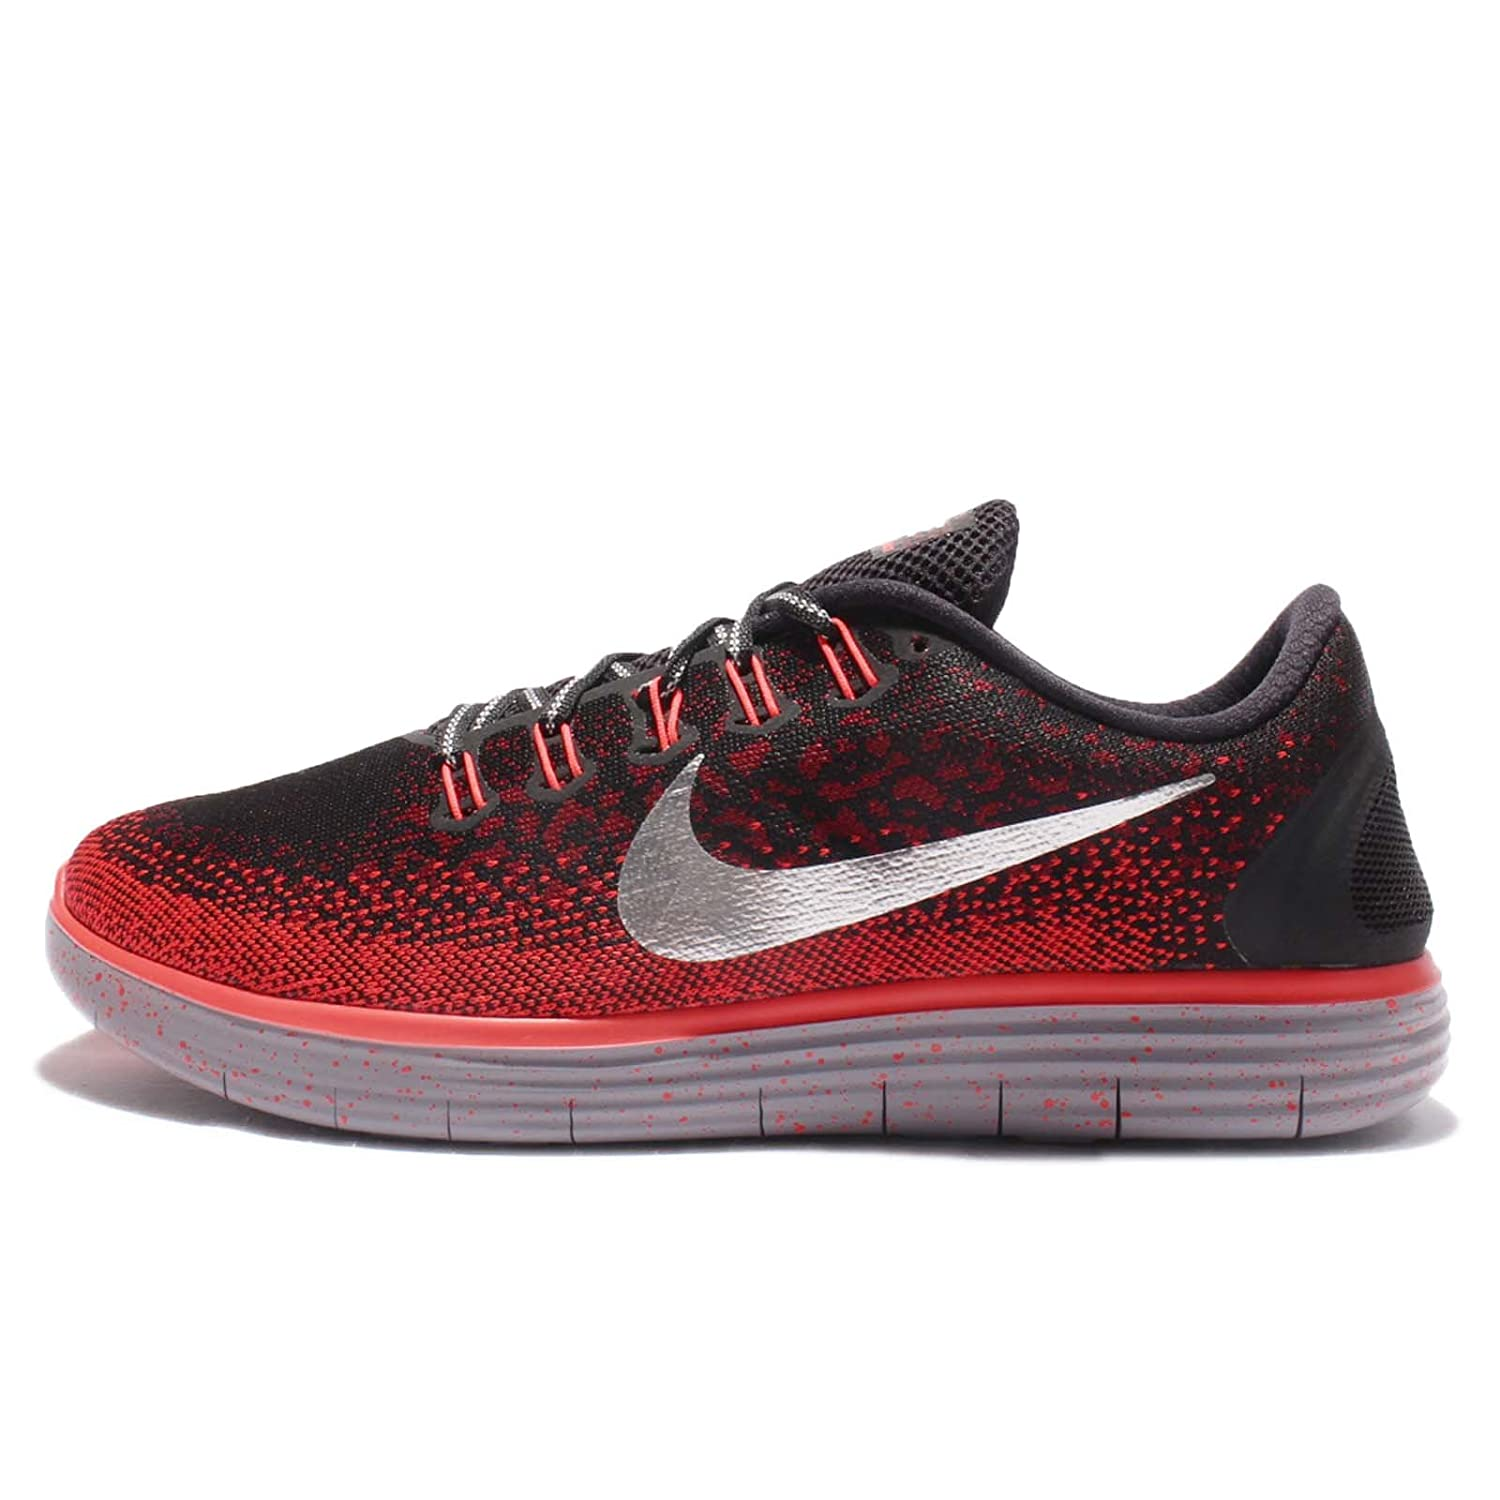 Nike Men's Free RN Distance Shield Running Shoe B01M6V40SY 12.5 D(M) US|Black, Metallic Silver, Team Red